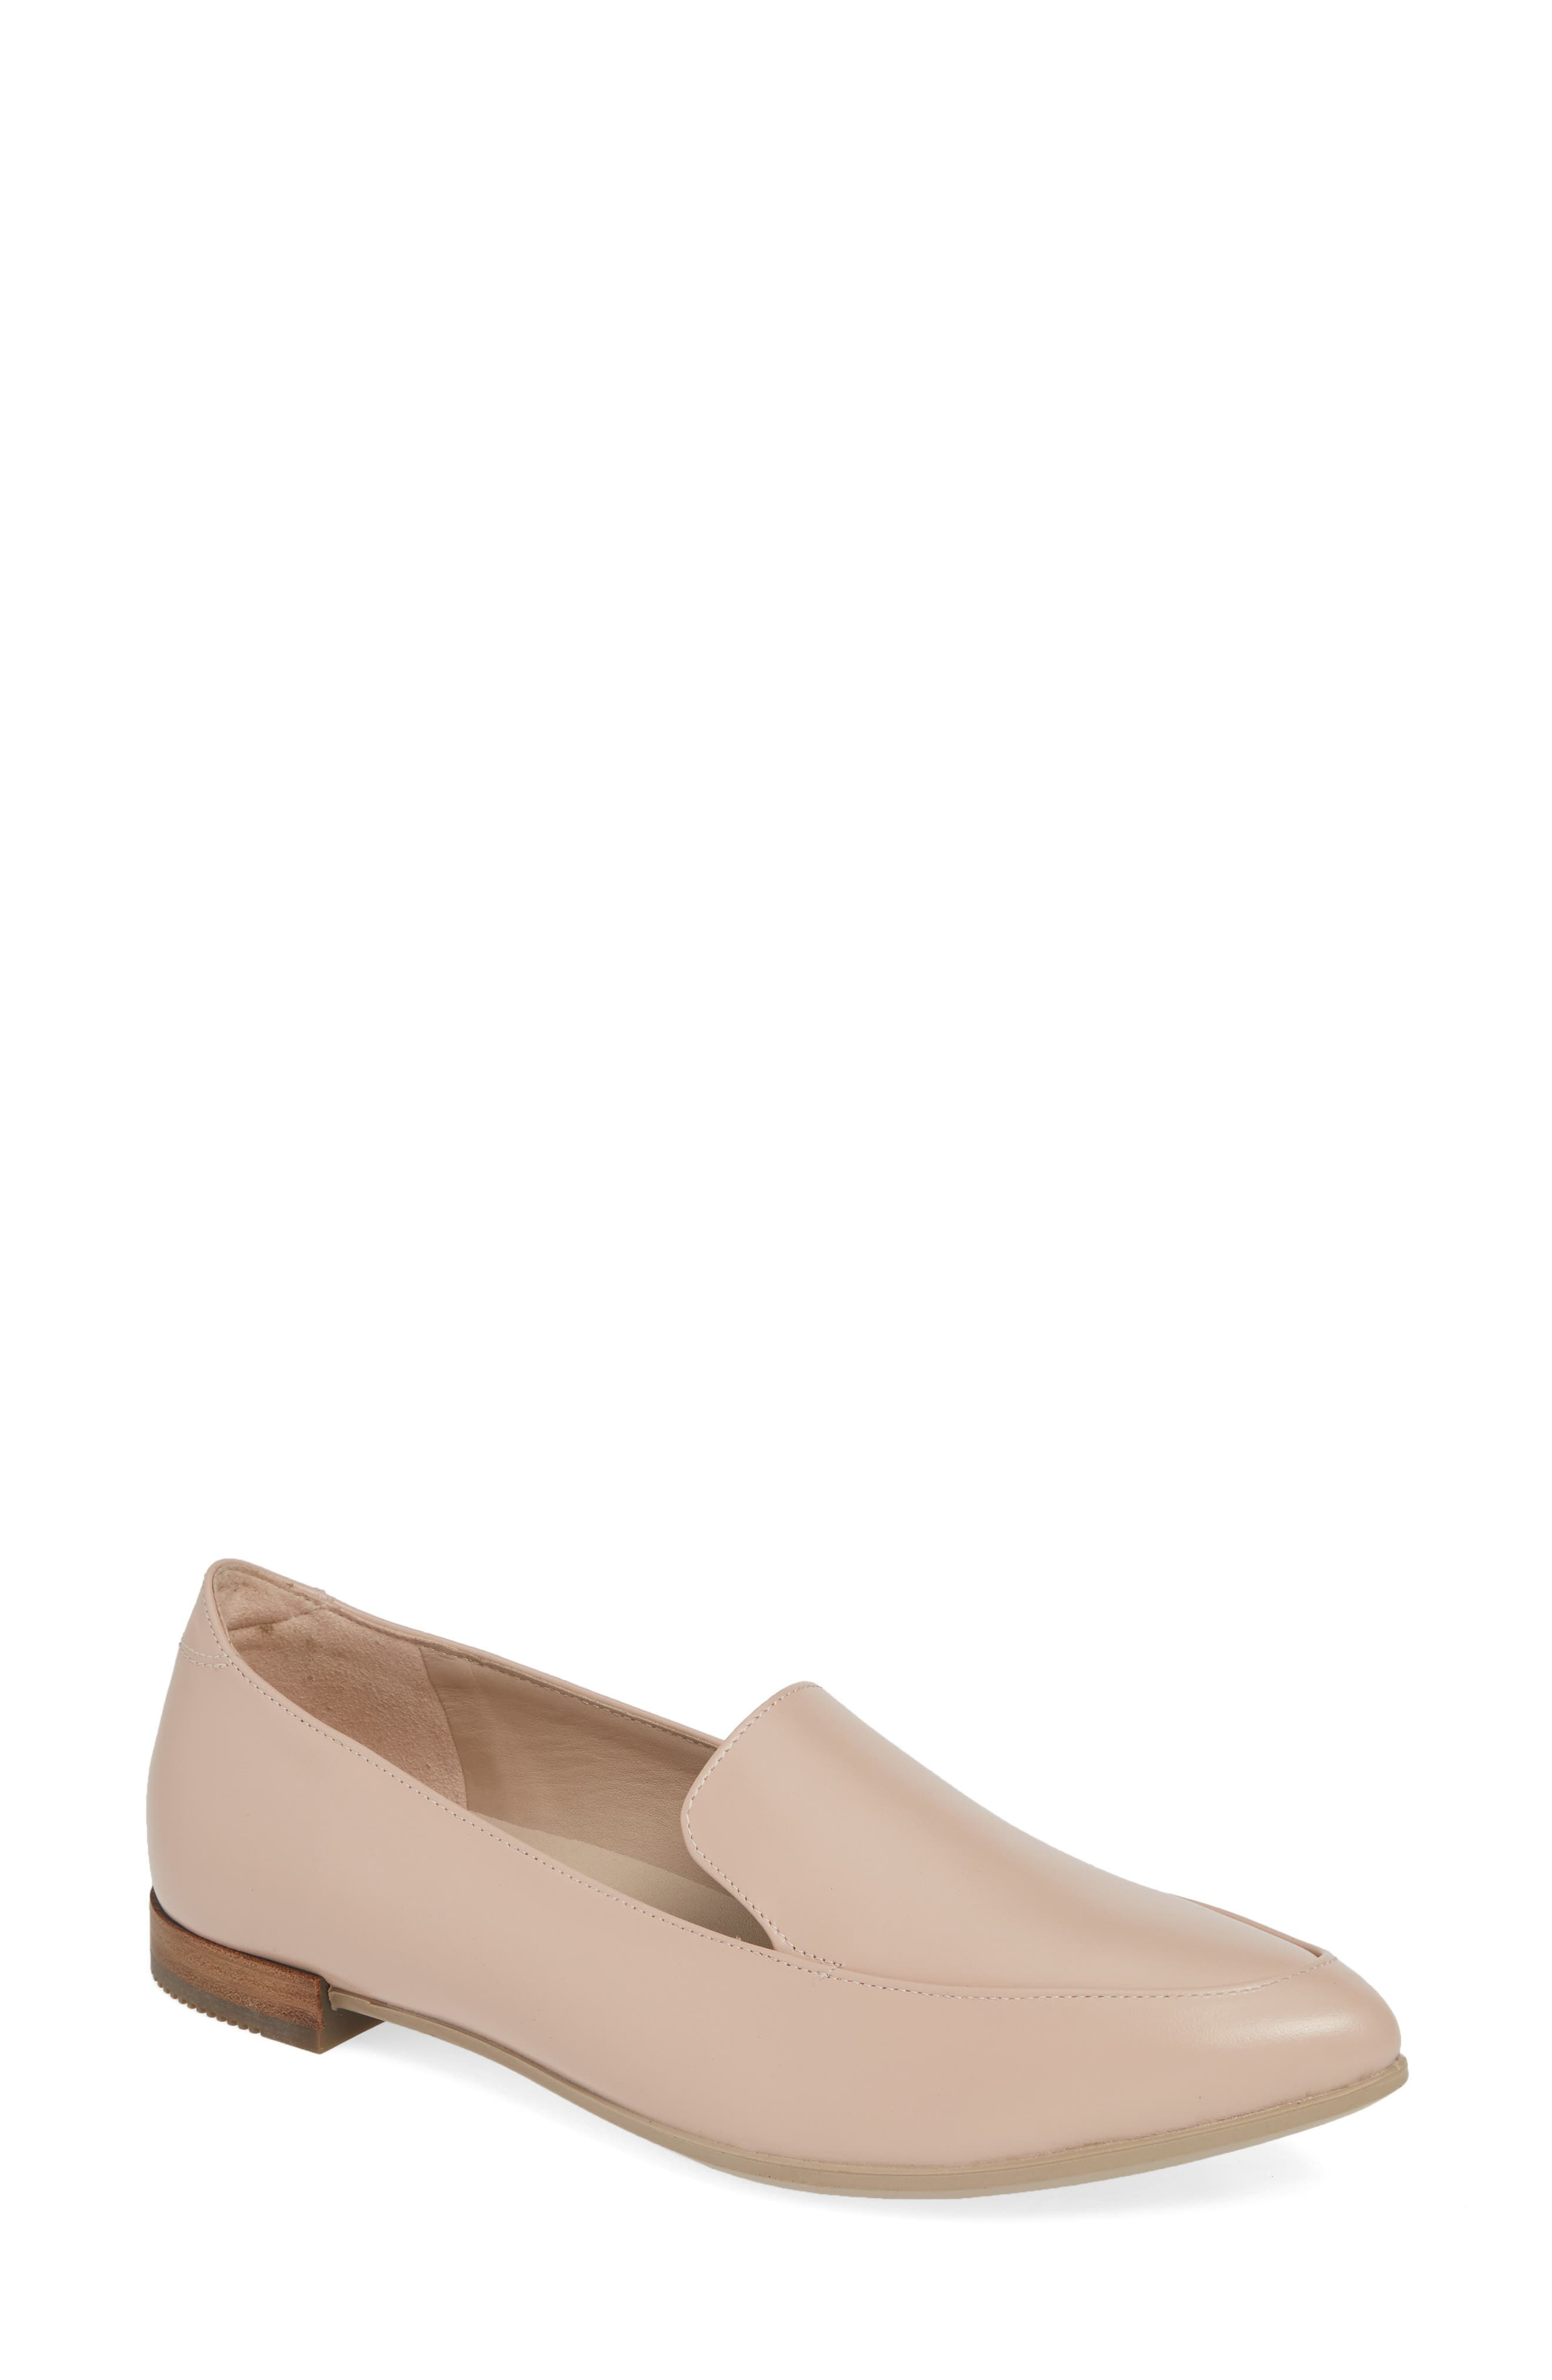 ECCO, Shape Pointy Ballerina II Flat, Main thumbnail 1, color, ROSE DUST LEATHER